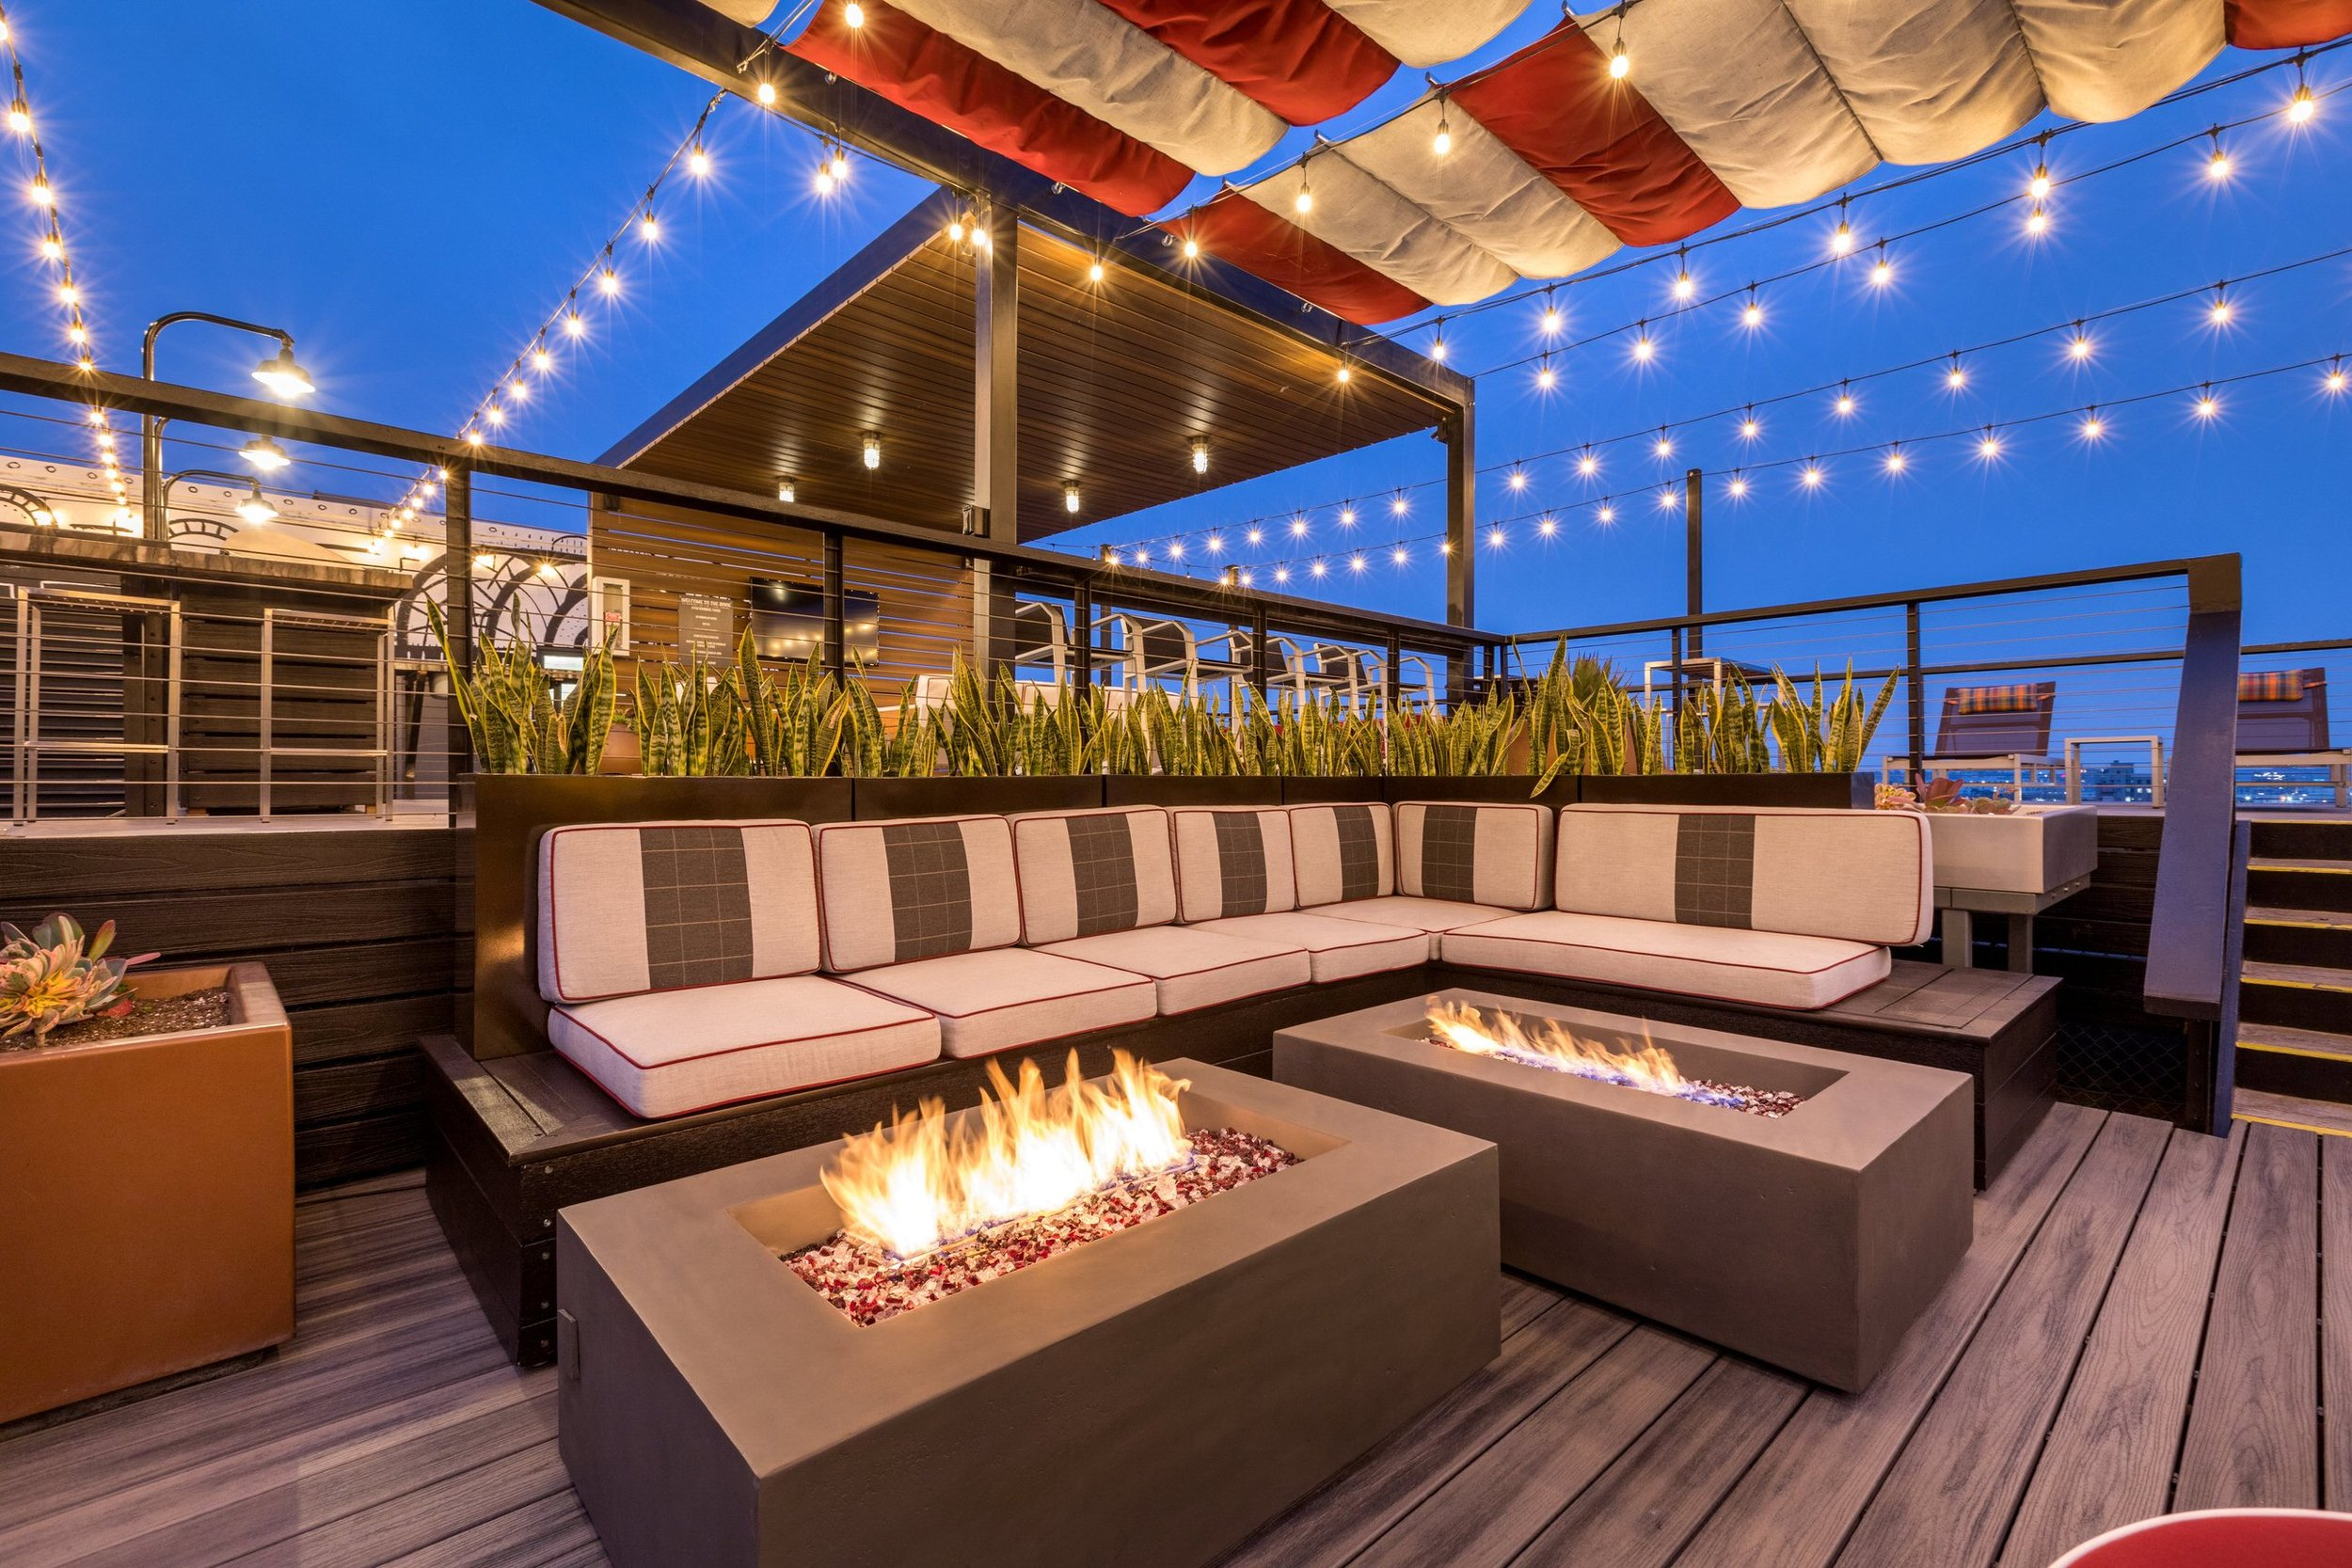 Rooftop Lounge Area at Santa Fe Lofts(2).jpg